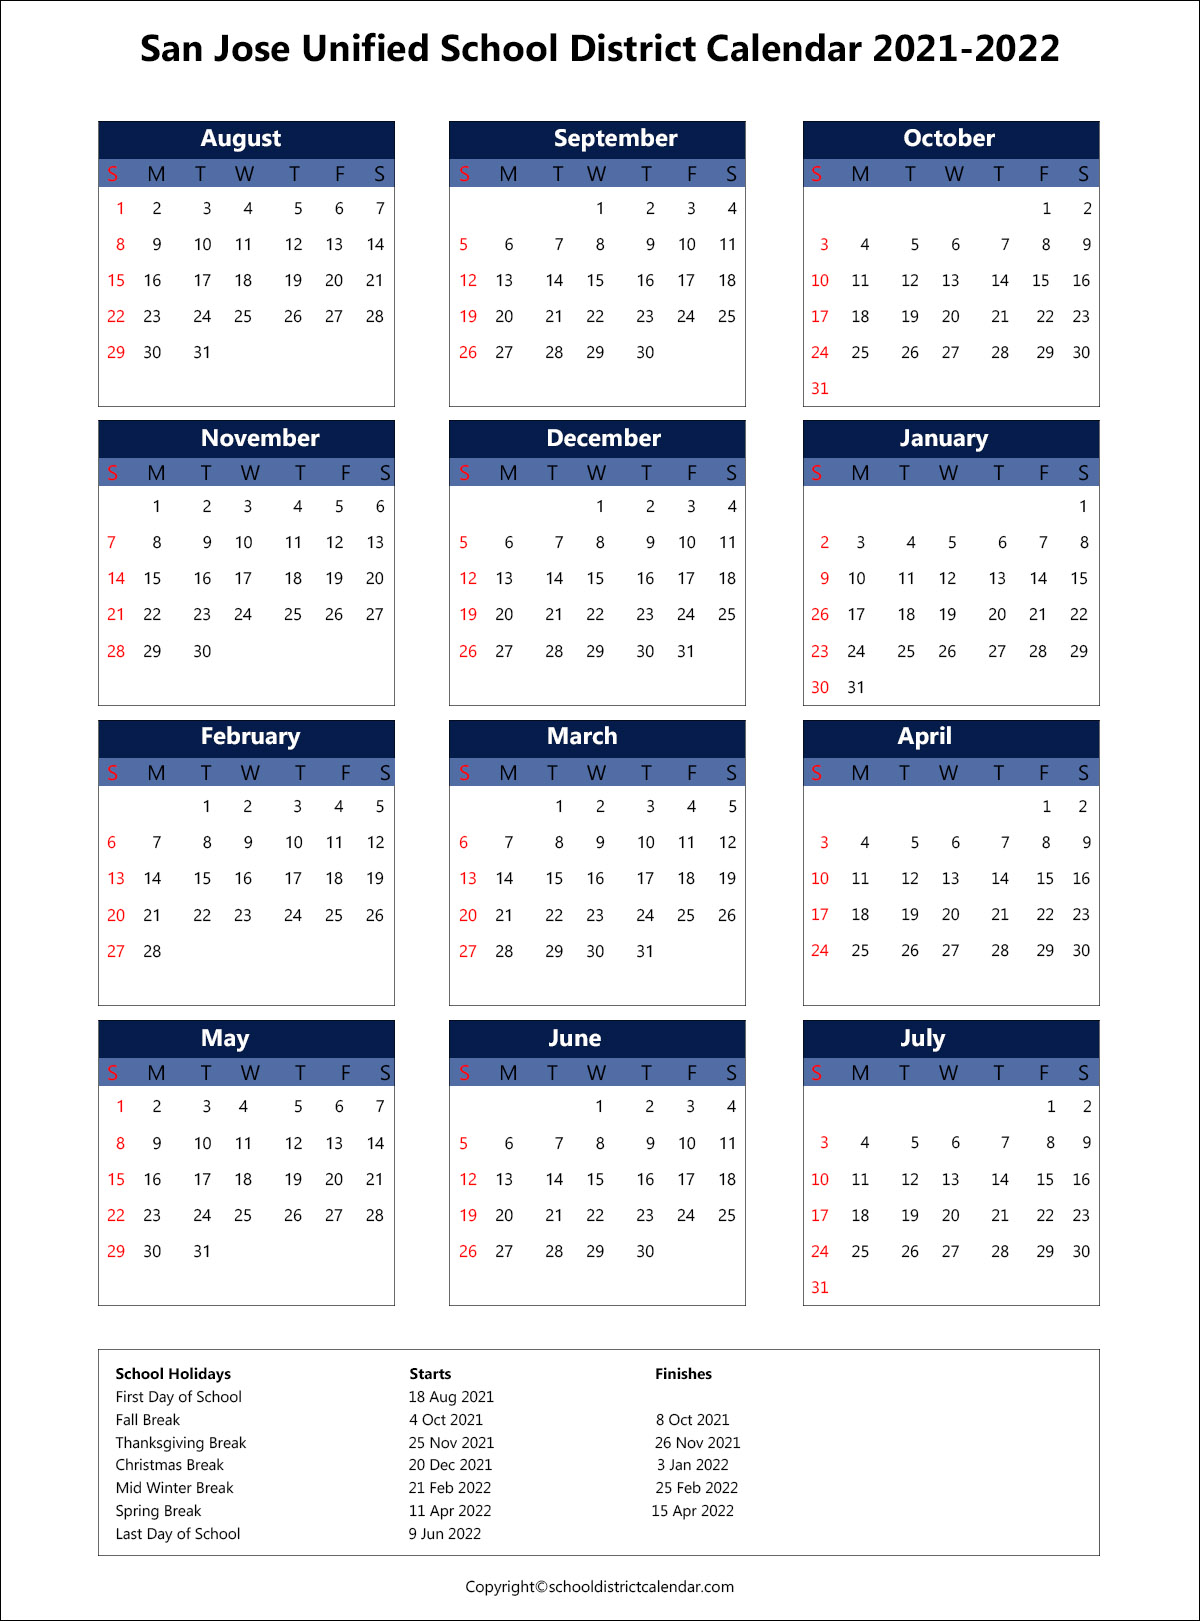 San Jose Unified School District Calendar 2021